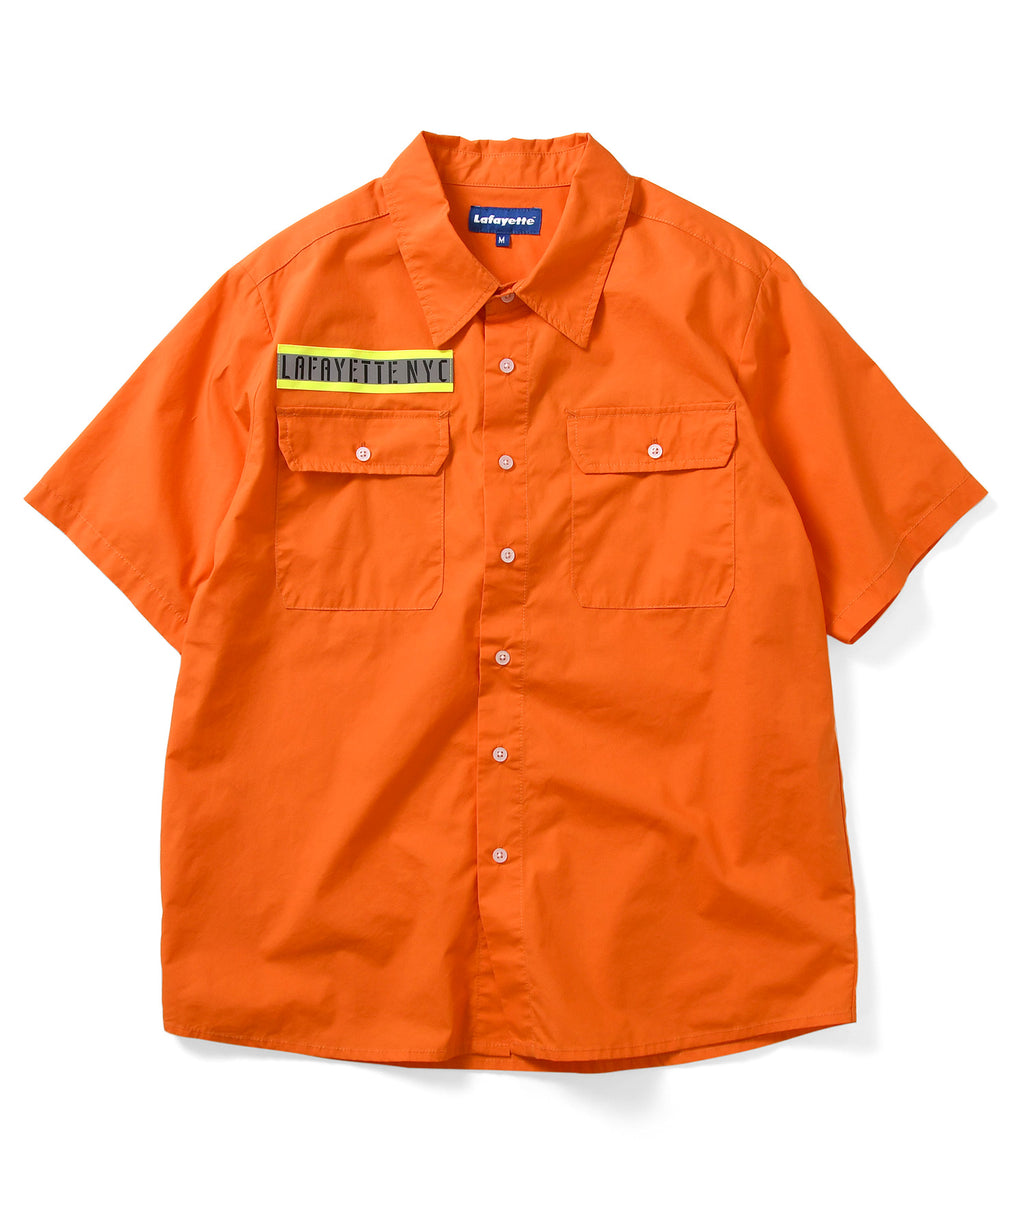 Lafayette HIGH-VIS BOX LOGO S/S WORK SHIRT LS200205 ORANGE